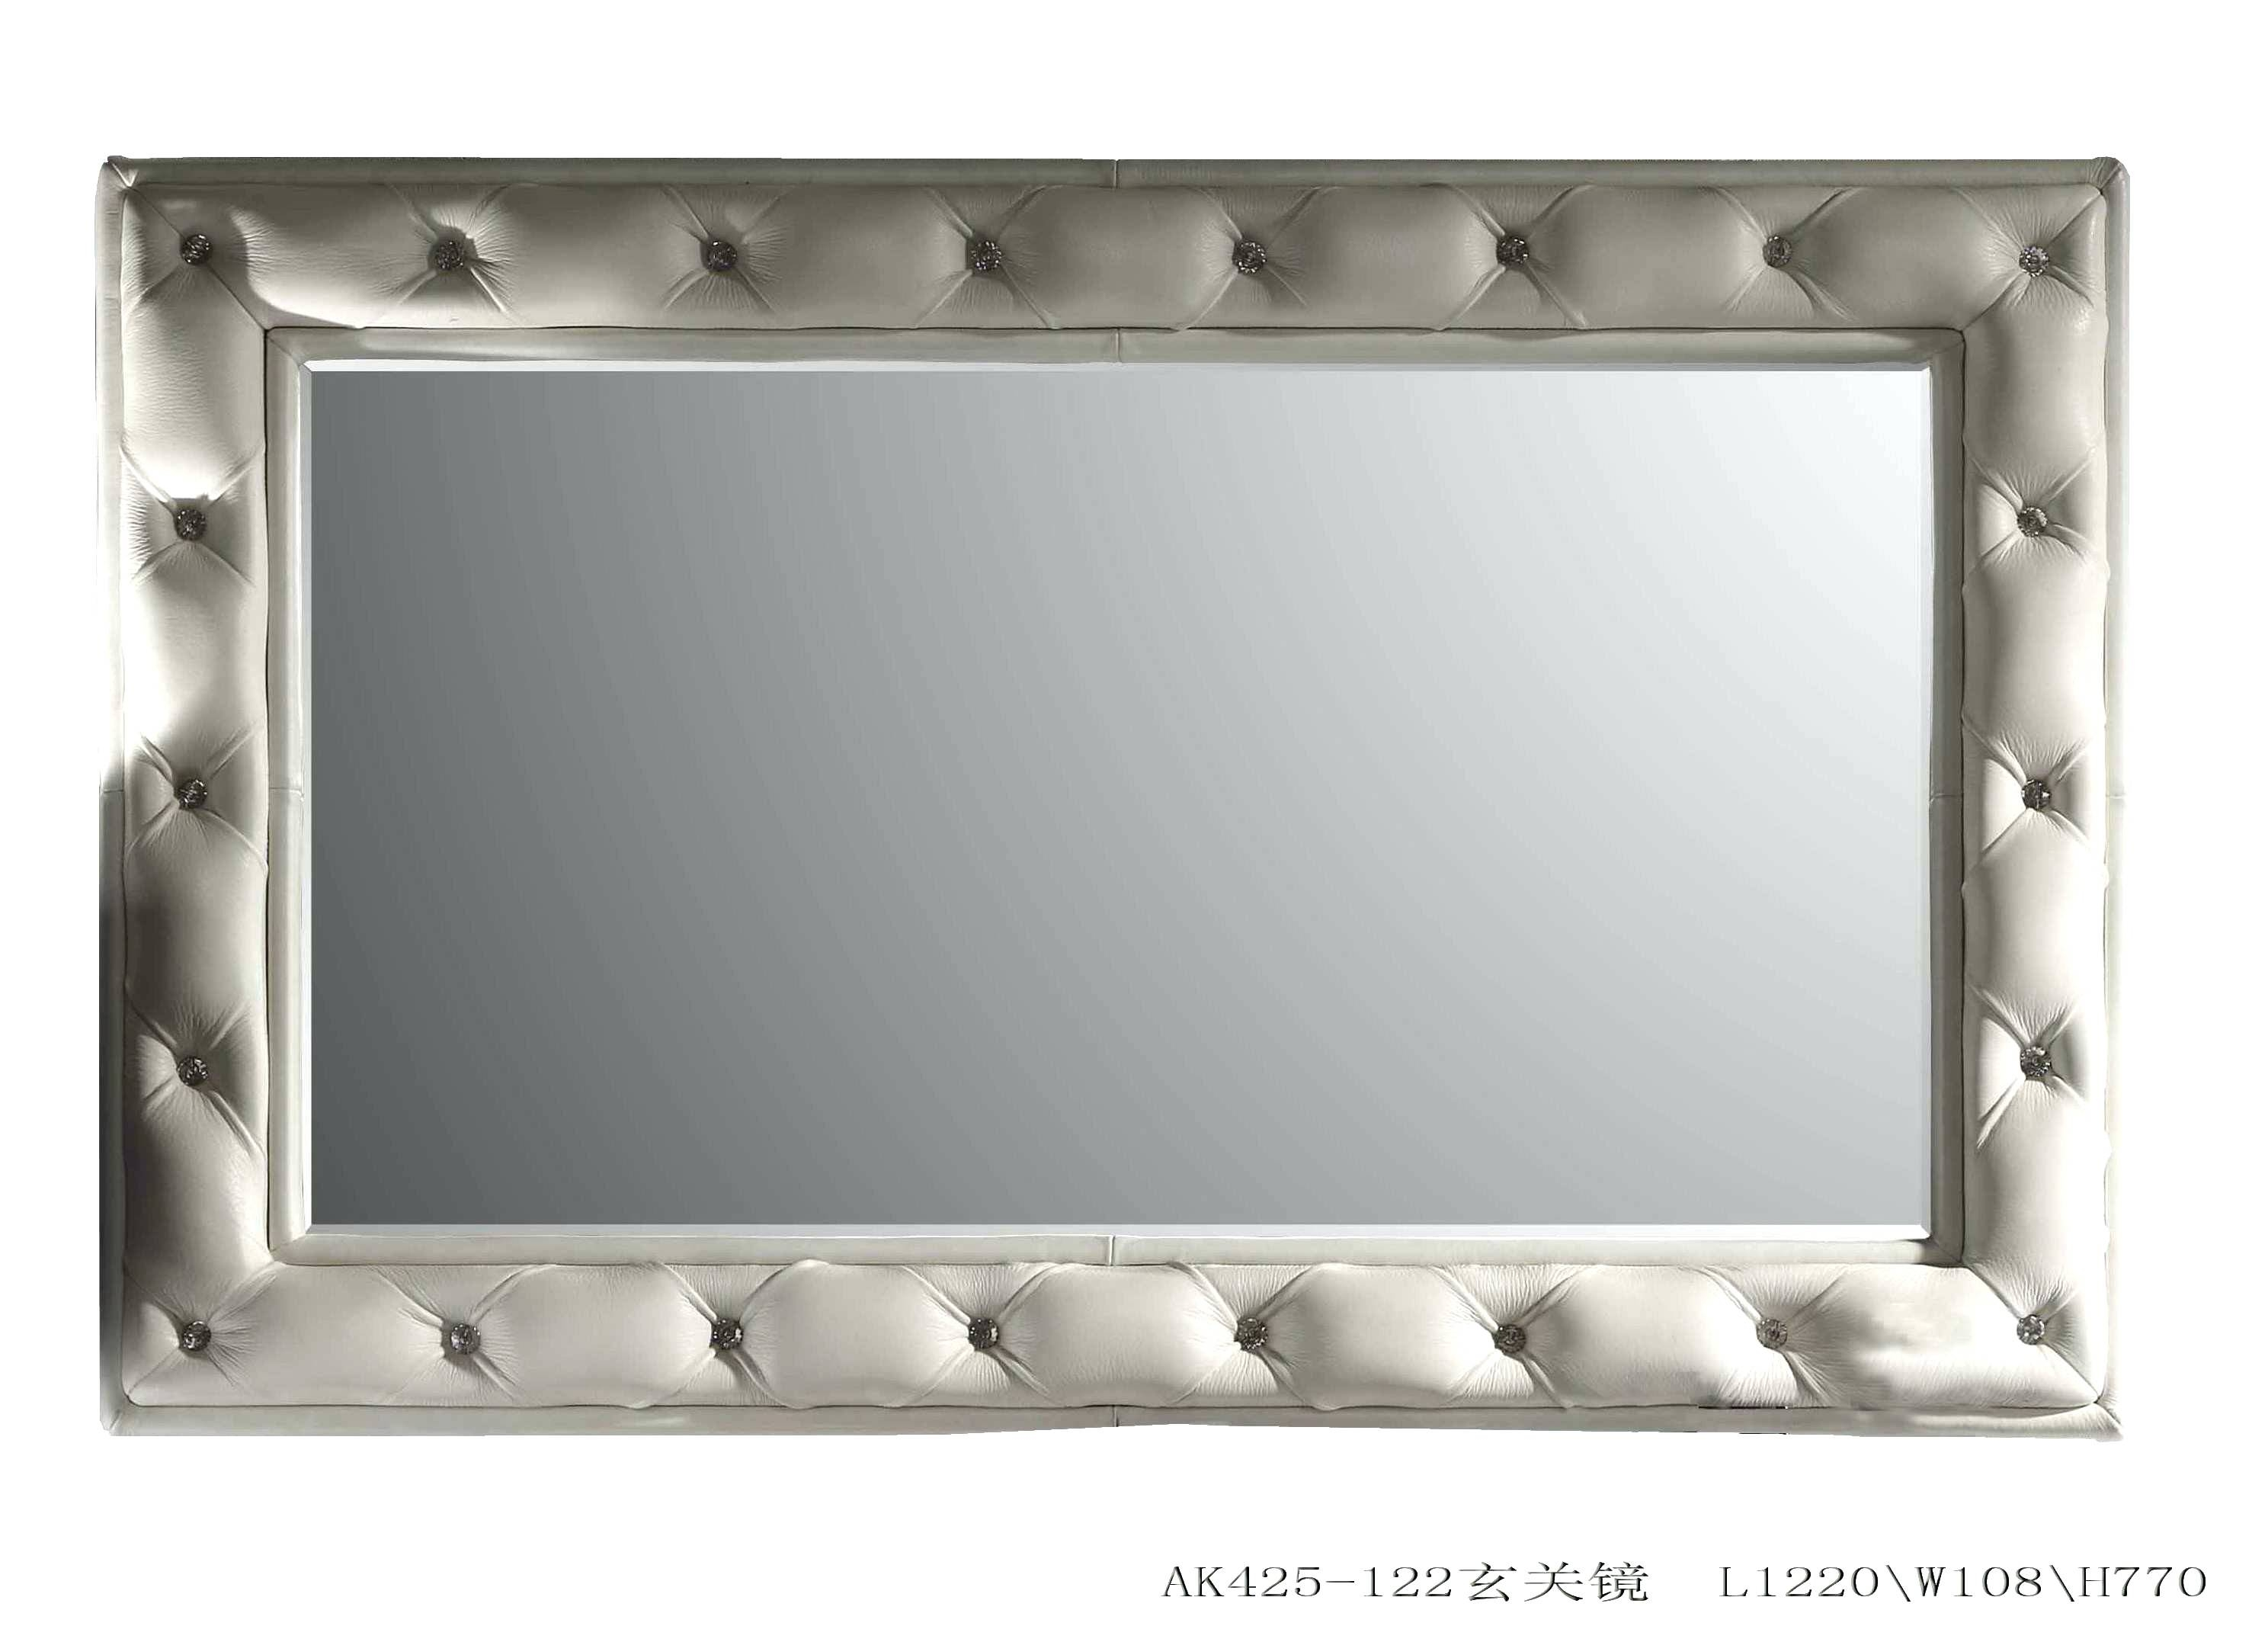 Wall Mirrors ~ Leather Wall Mirror Sale Leather Framed Mirrors Uk inside Black Leather Framed Mirrors (Image 14 of 15)